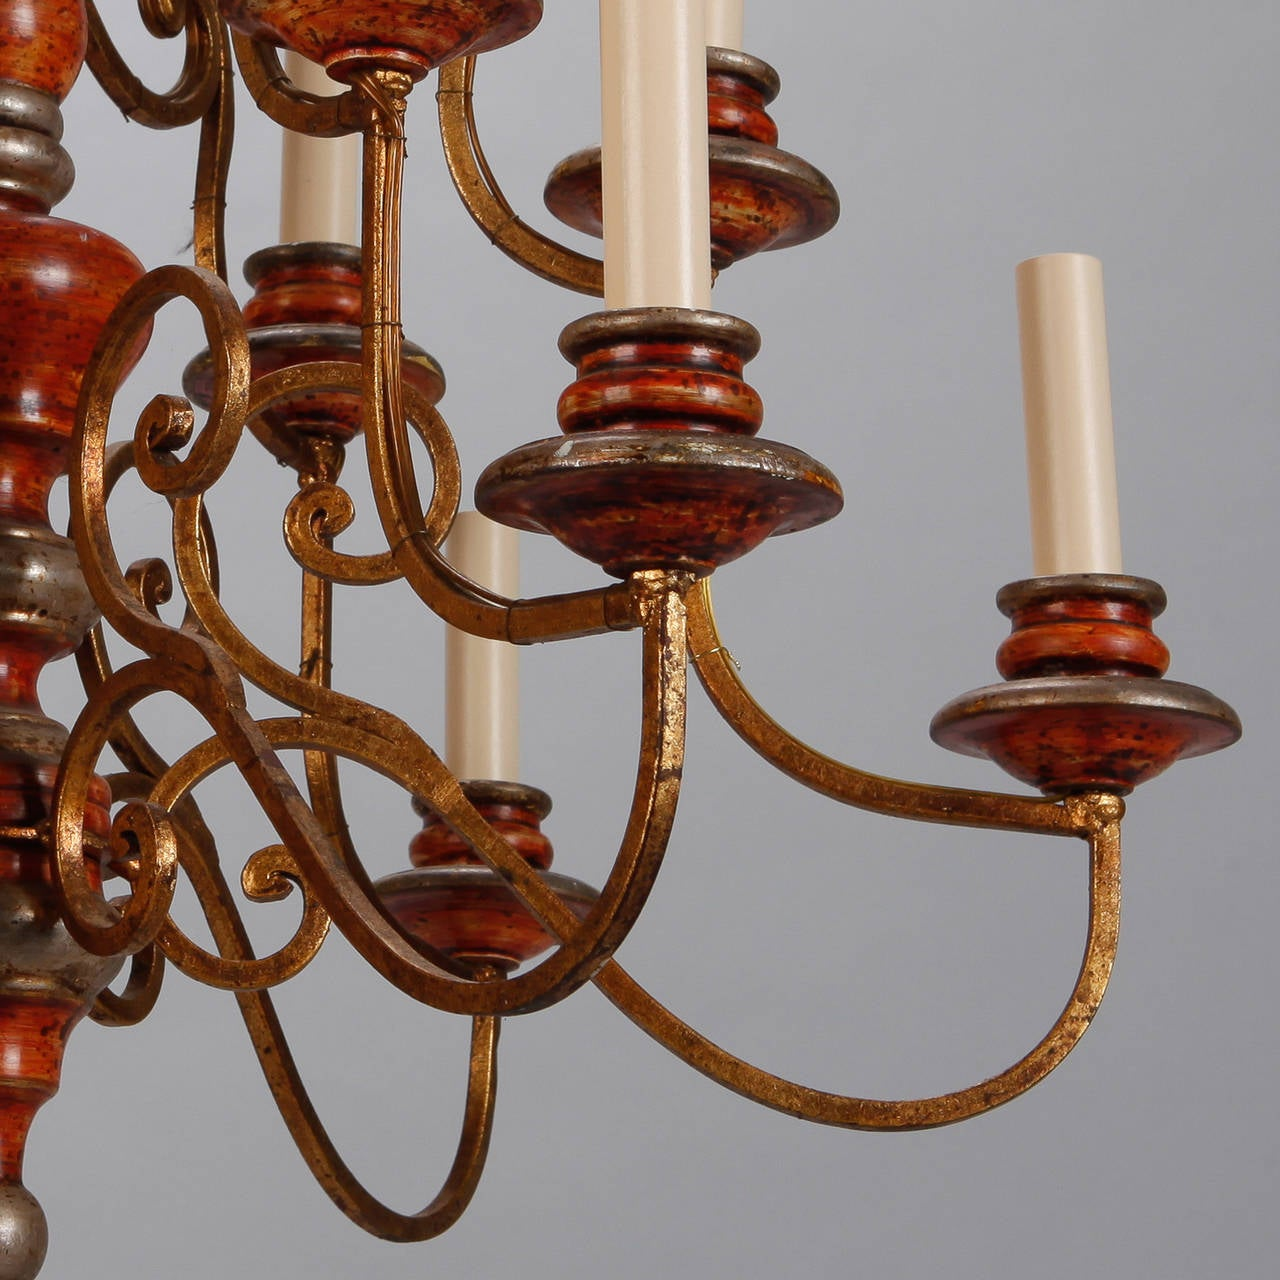 Mid-20th Century Twelve Light Italian Painted Wood and Scrolled Gilt Metal Chandelier For Sale